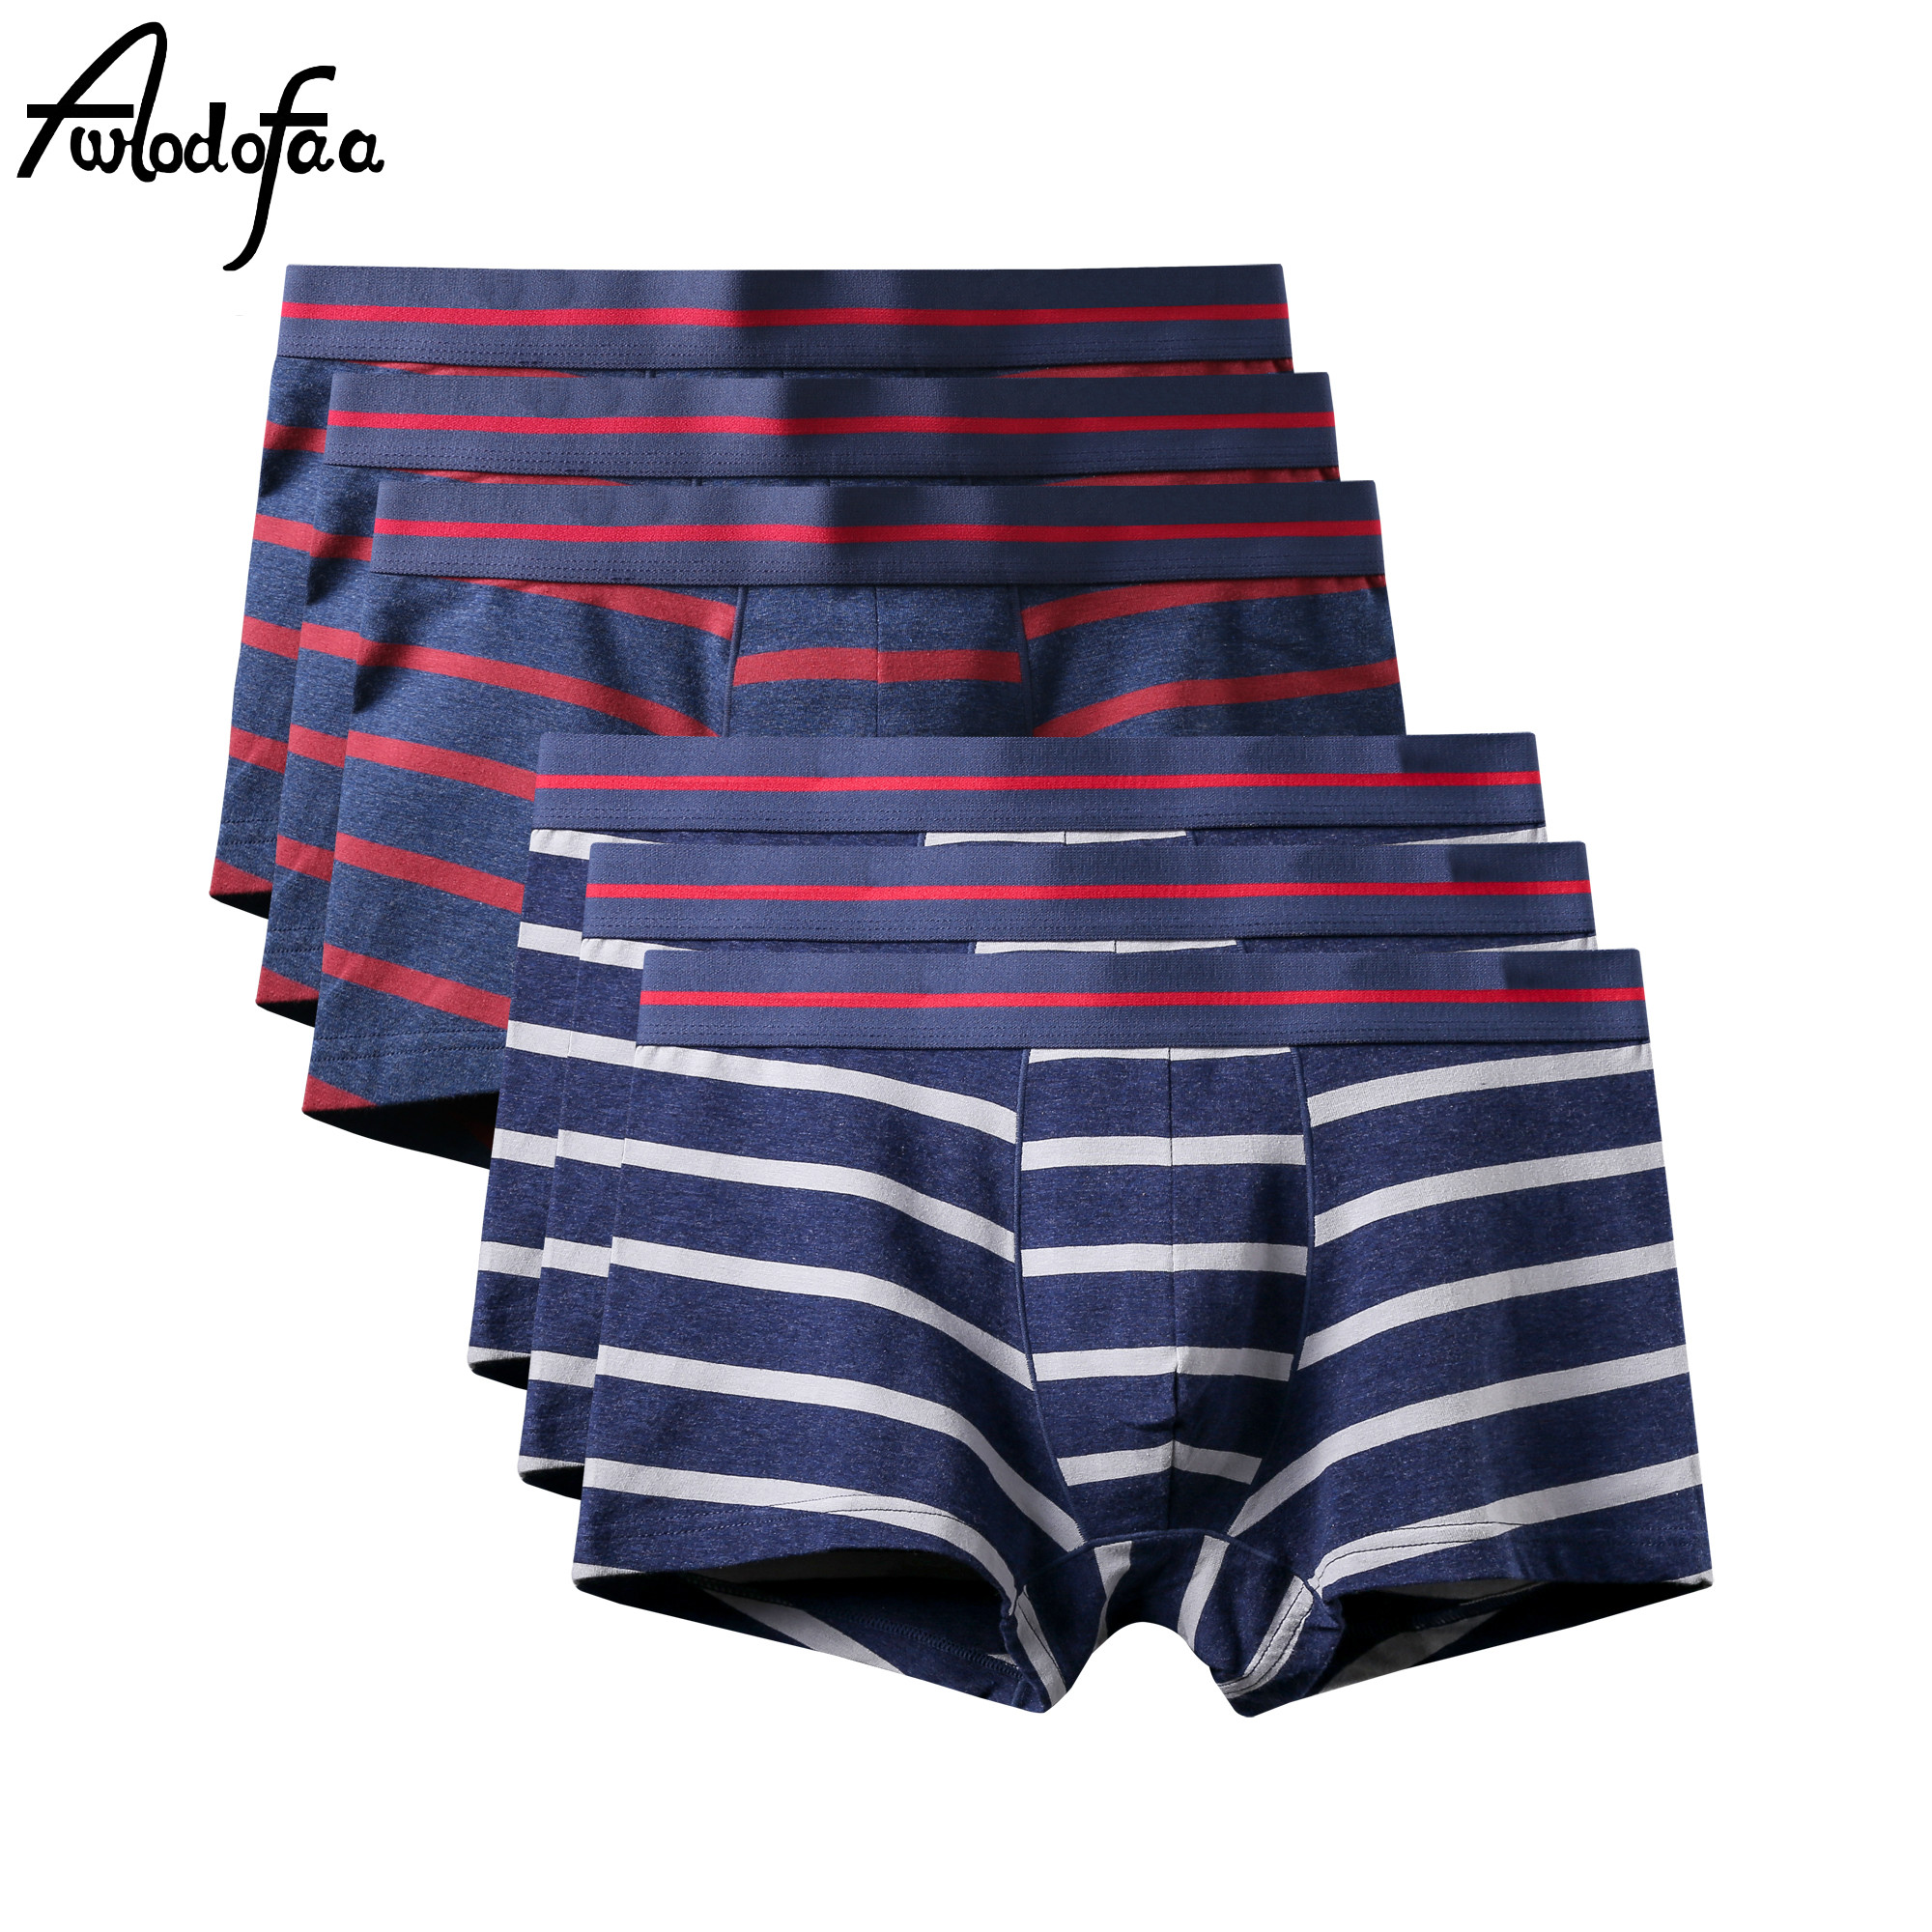 6Pcs/lot Male Panties <font><b>Boxer</b></font> Men <font><b>Boxer</b></font> <font><b>short</b></font> <font><b>Sexy</b></font> Underwear Brand Boxershorts Colorful Breathable Interior <font><b>Homme</b></font> <font><b>Cotton</b></font> Underpant image